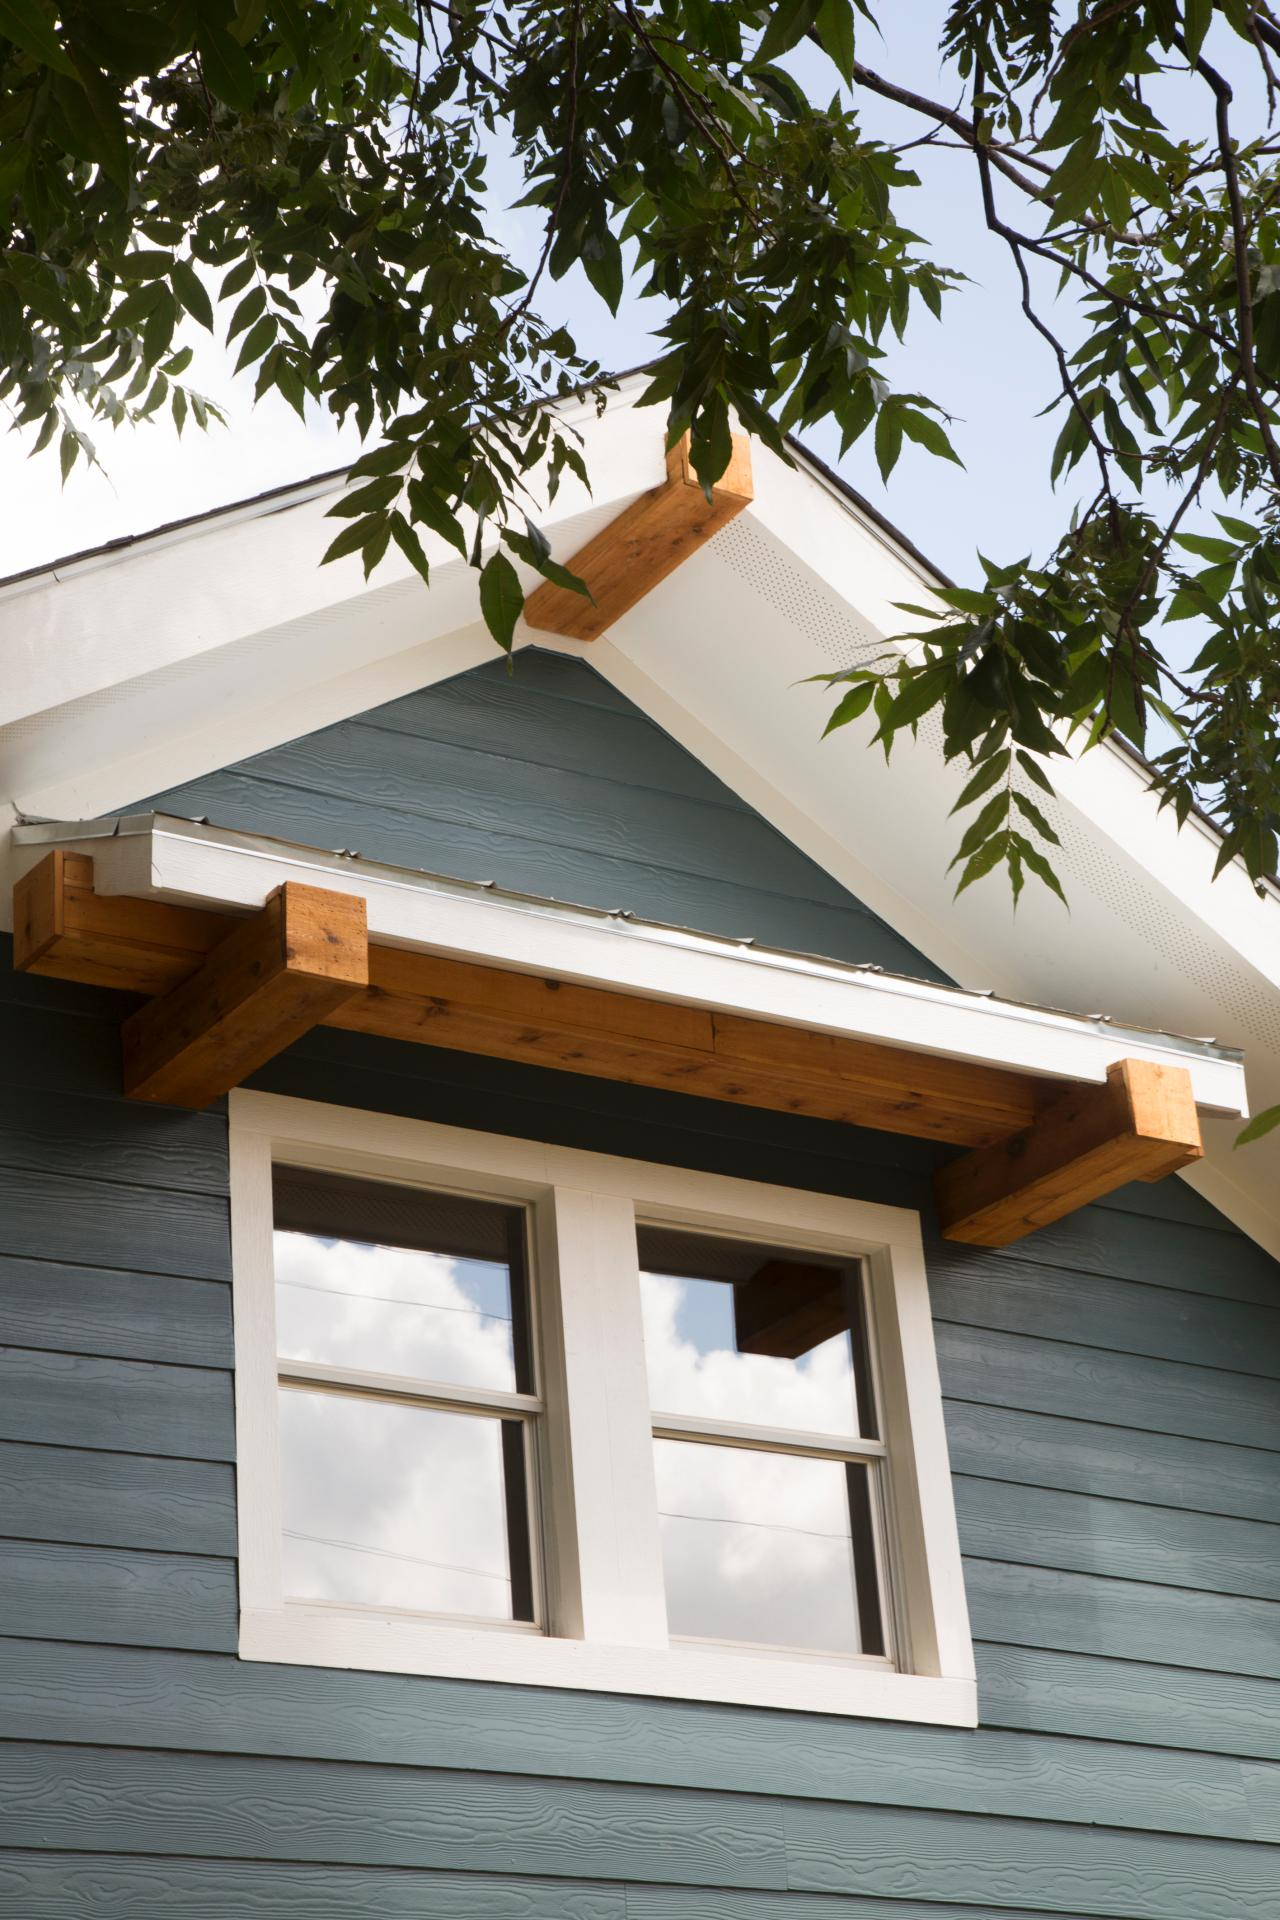 Have It Made In The Shade With The Right Window Awnings Diy